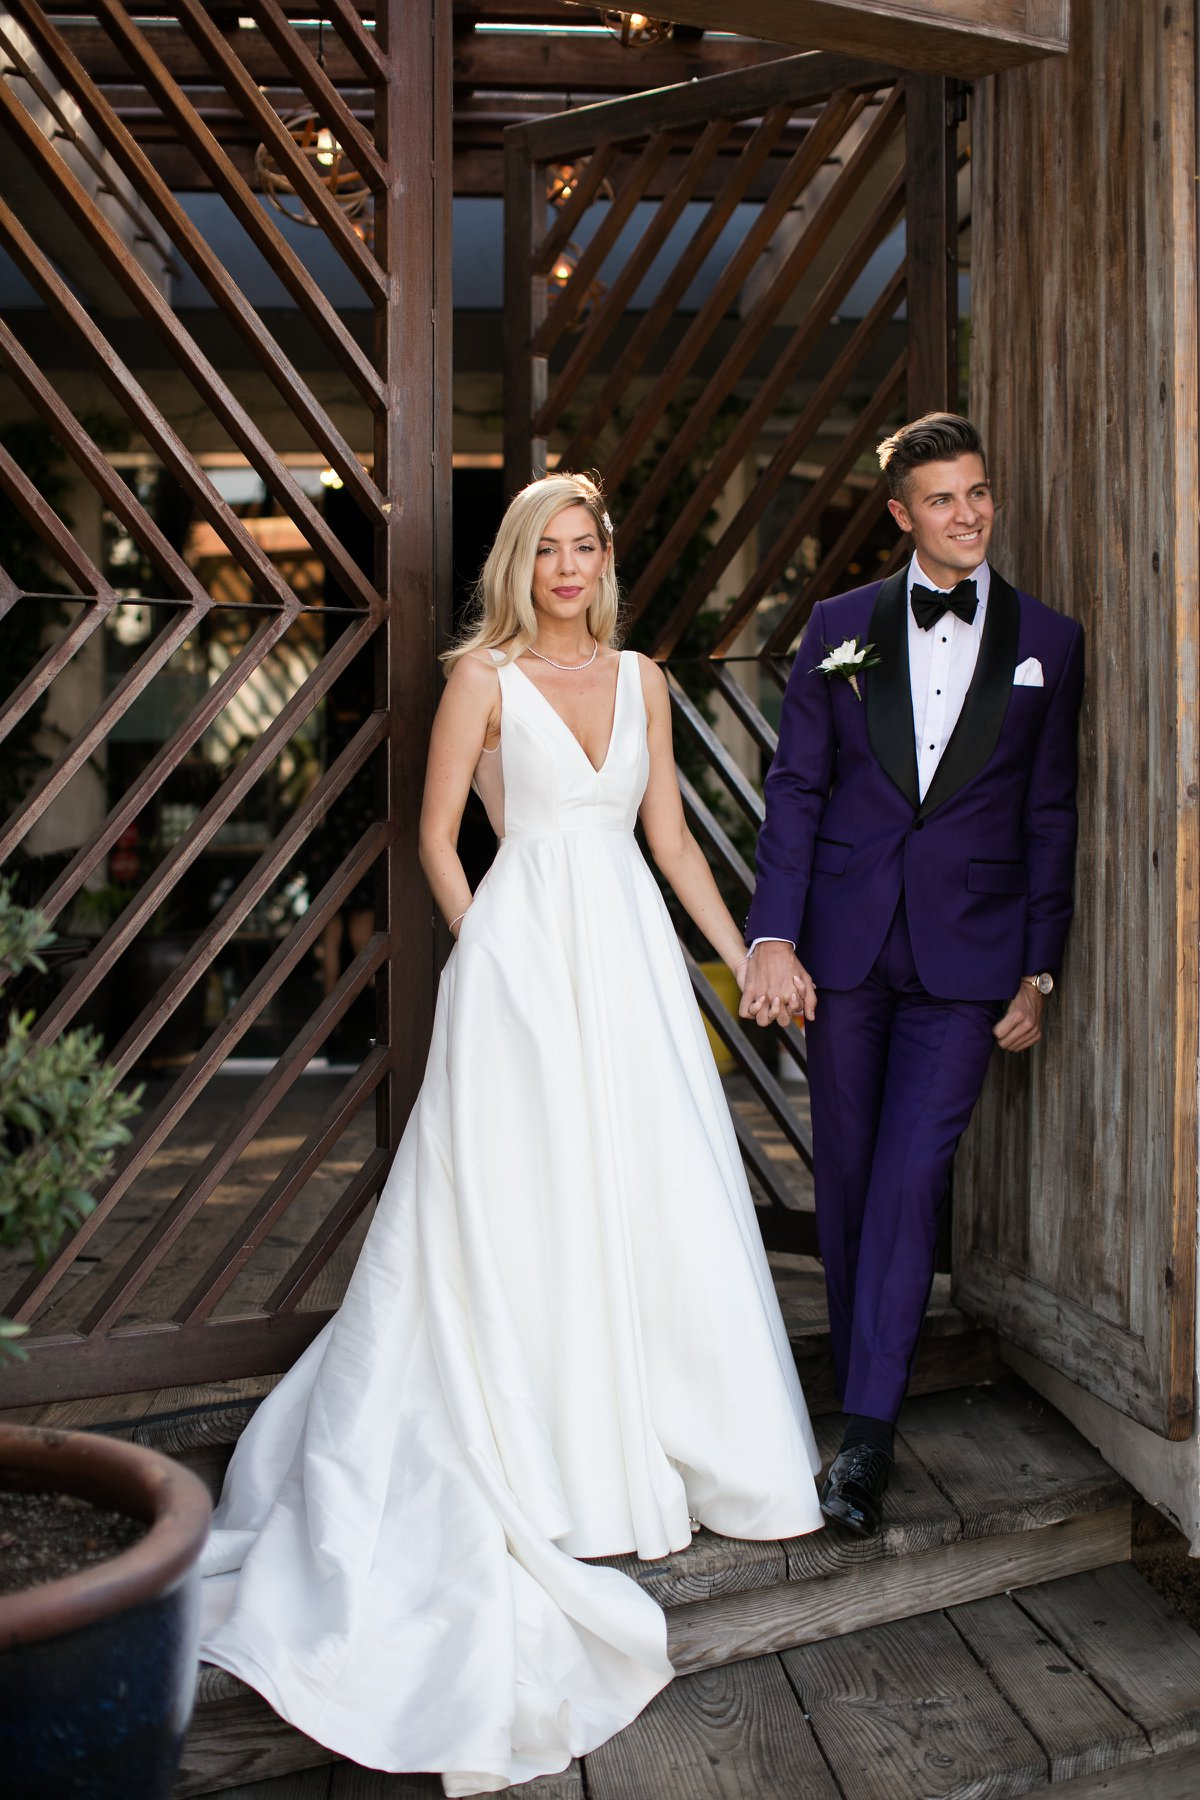 jaclyn smith and parker smith wedding spray tans